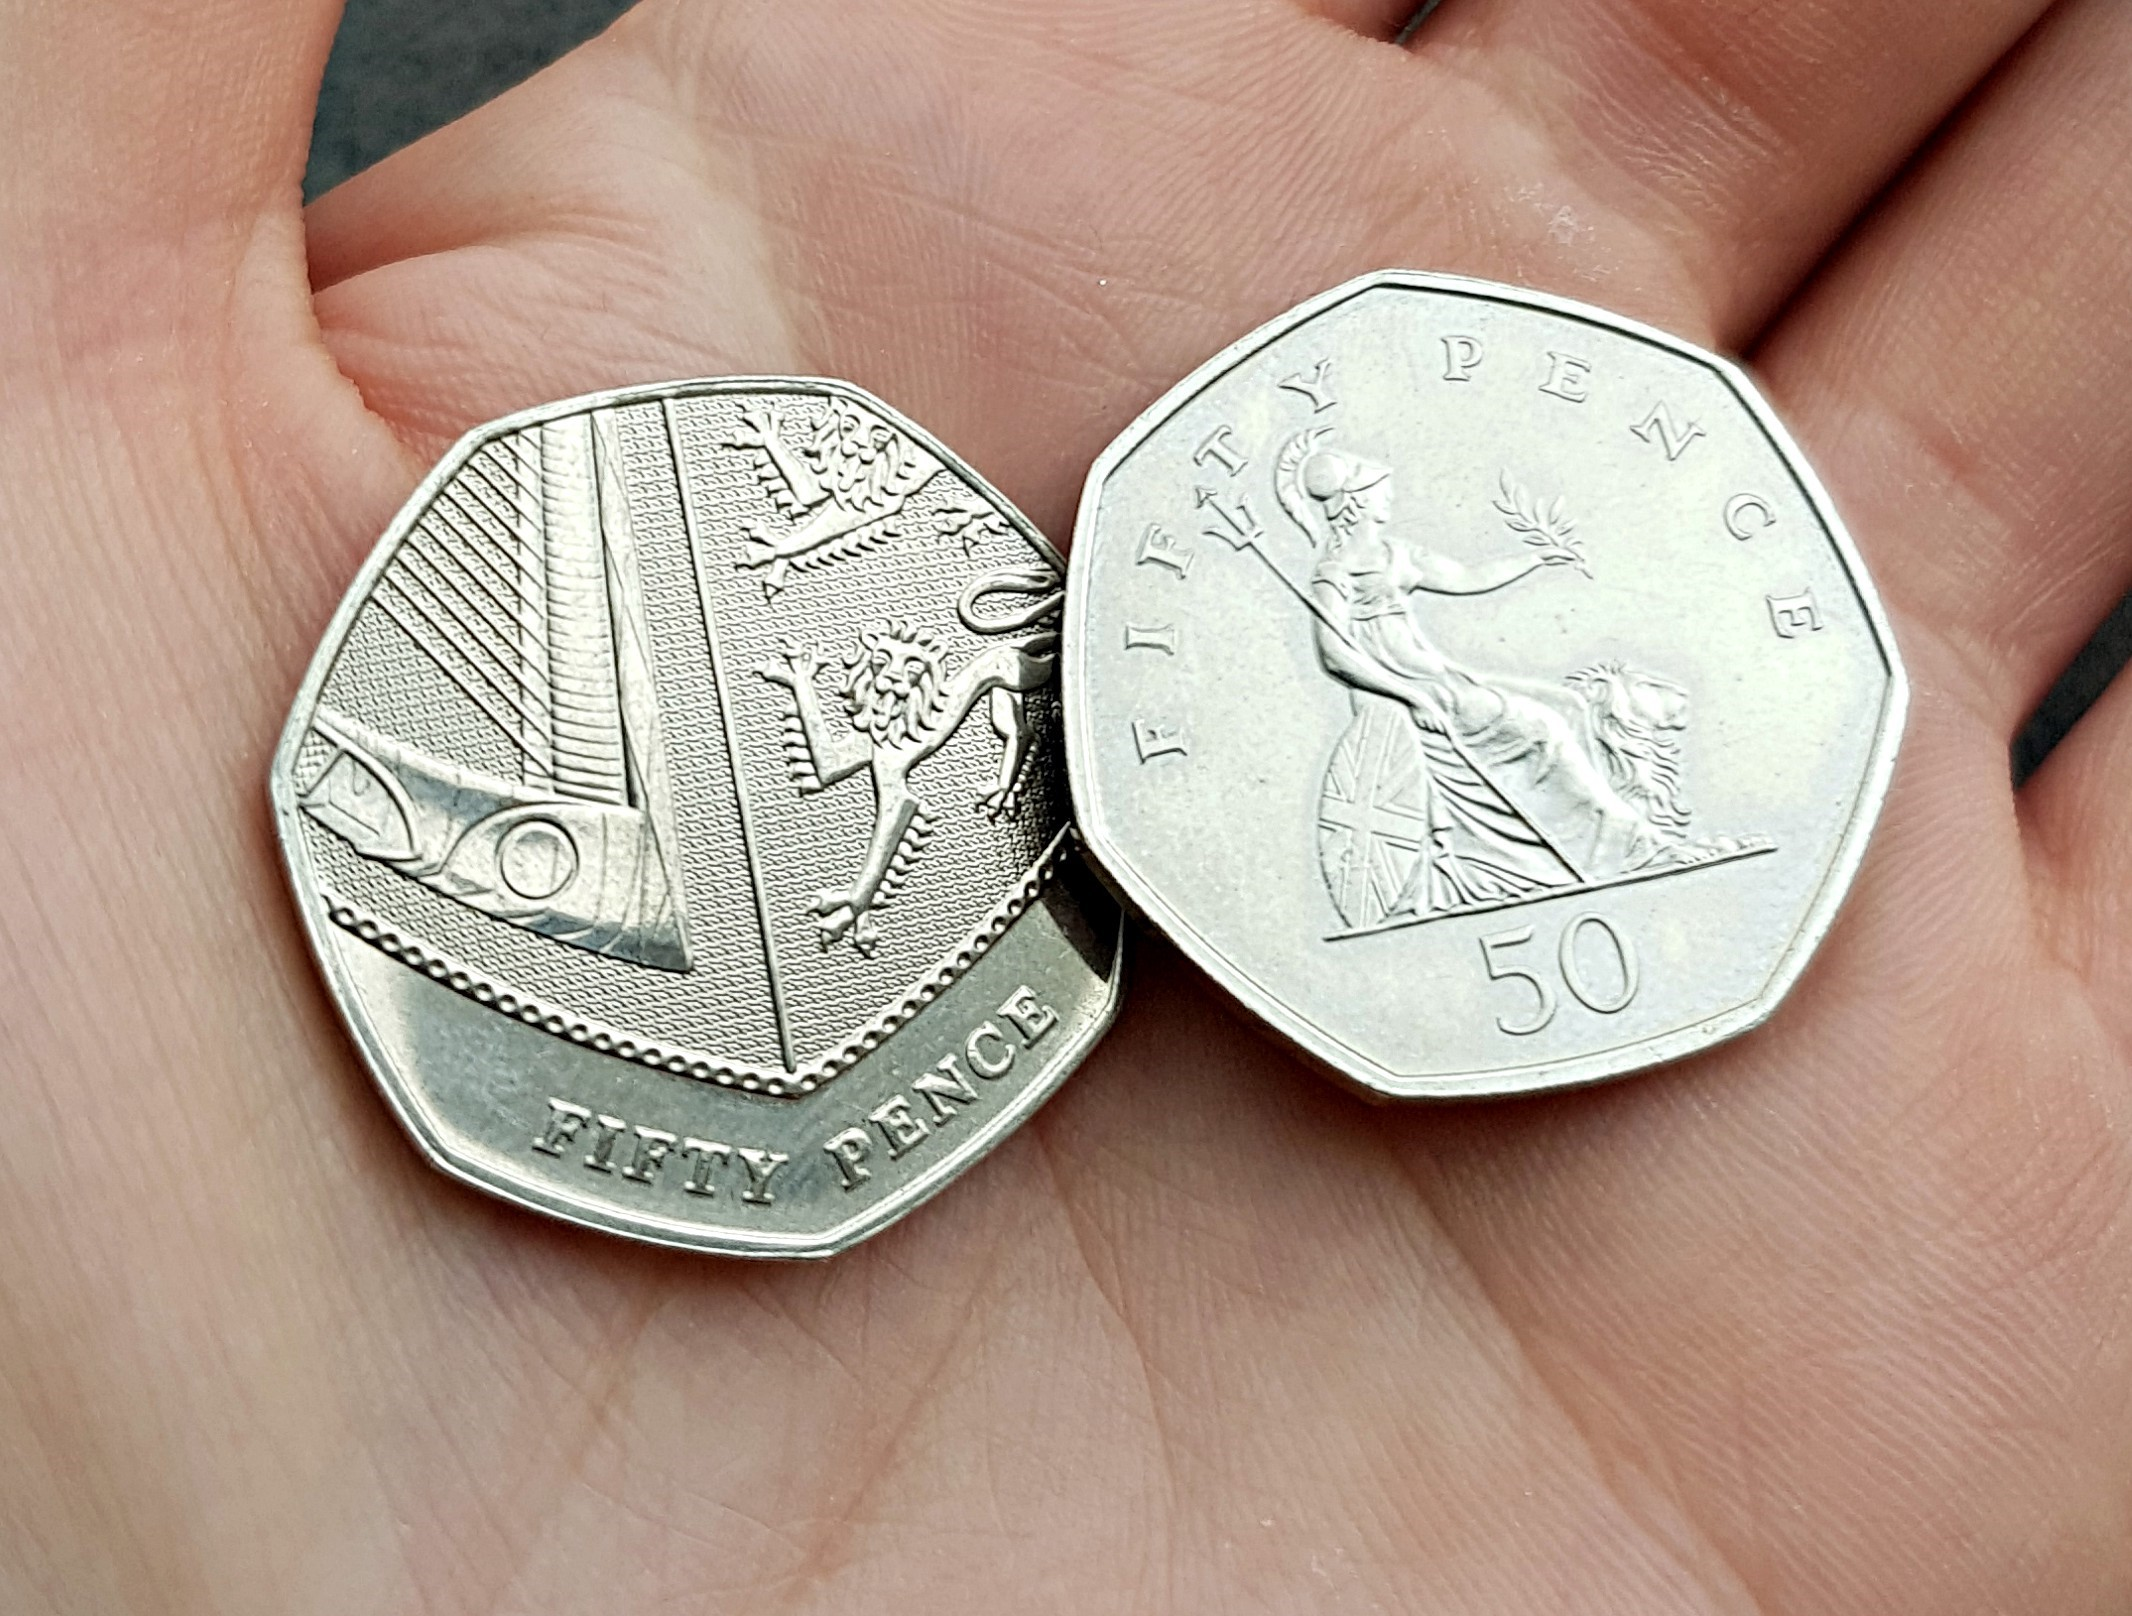 20190125 134111 - The rarest 50p and £2 coins revealed! UPDATED UK mintage figures.